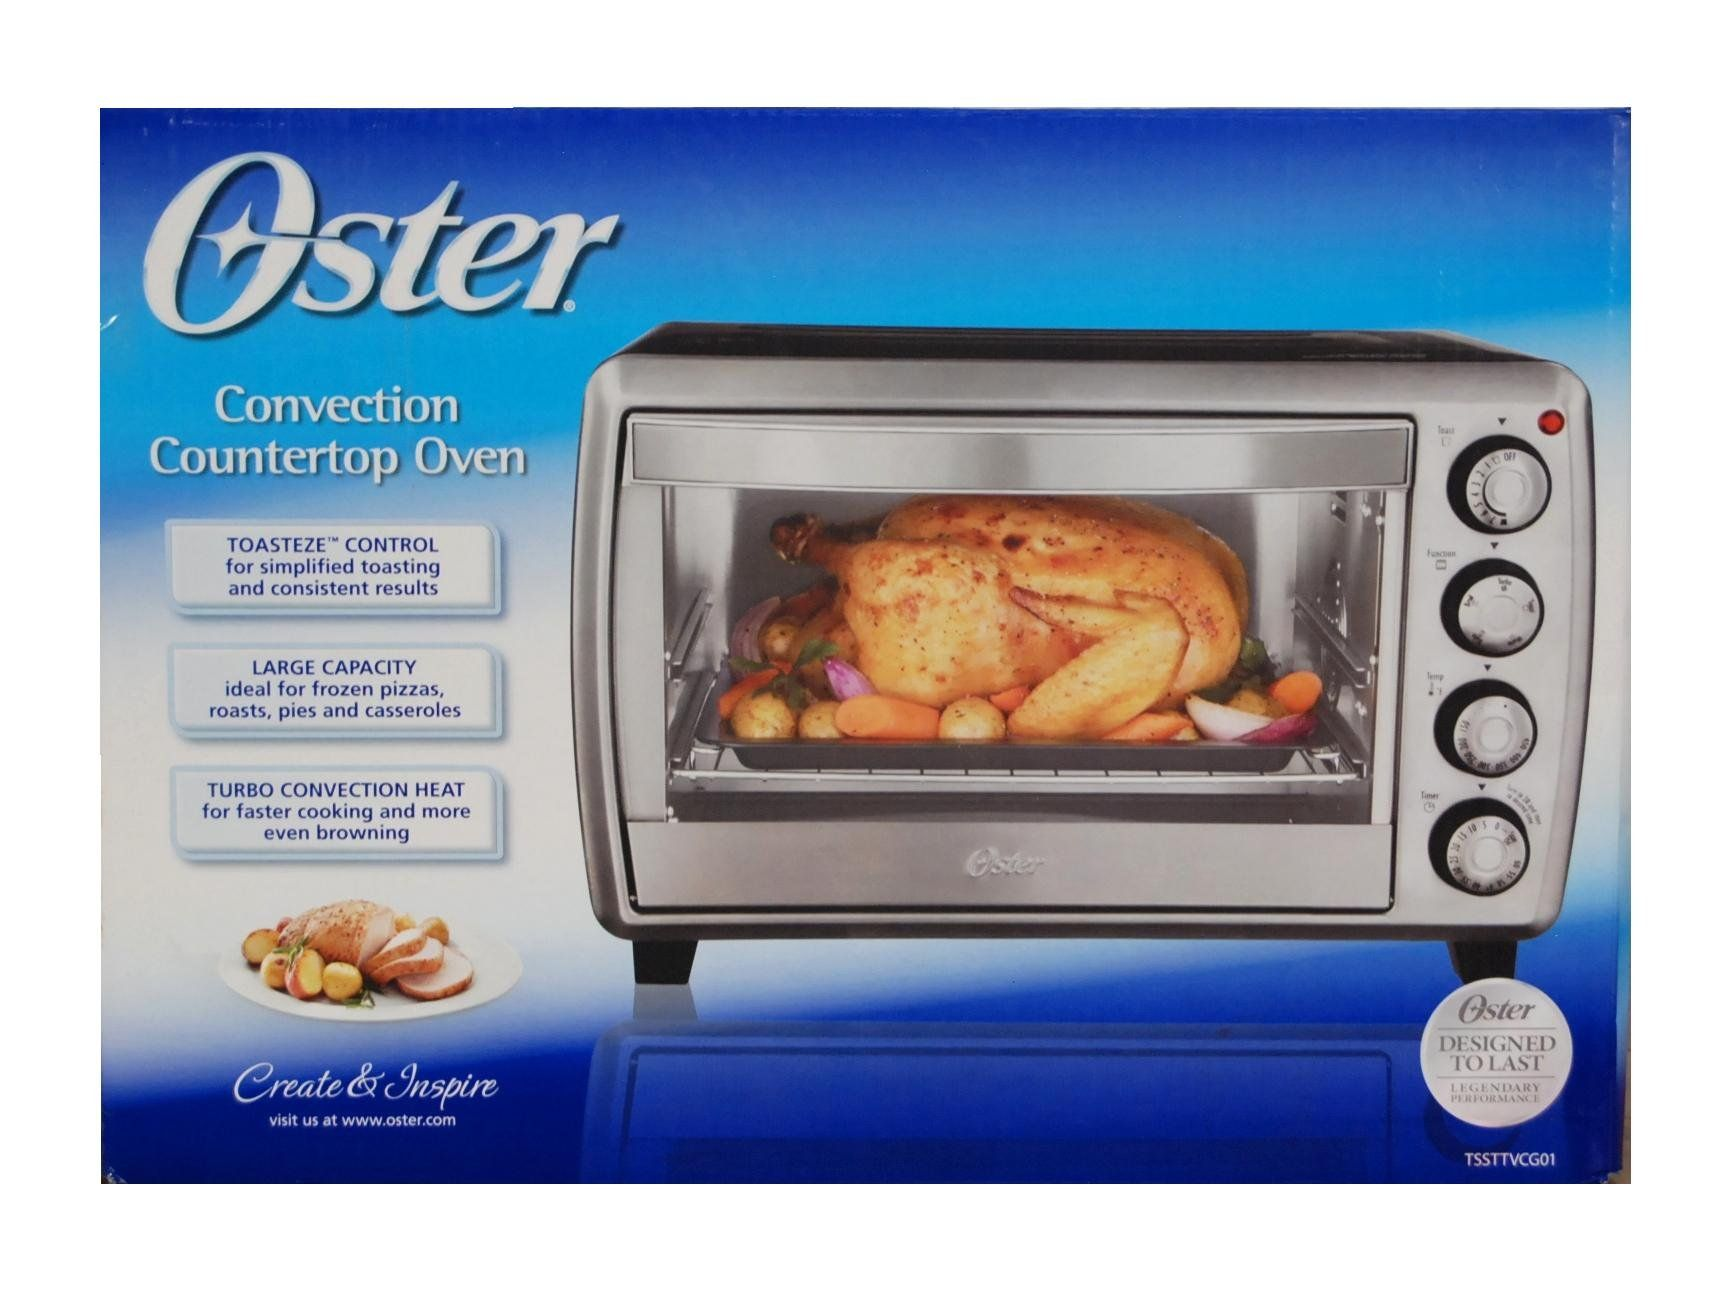 Oster Convection Countertop Oven Reviews Amazon Oster Convection Countertop Toaster Oven Large